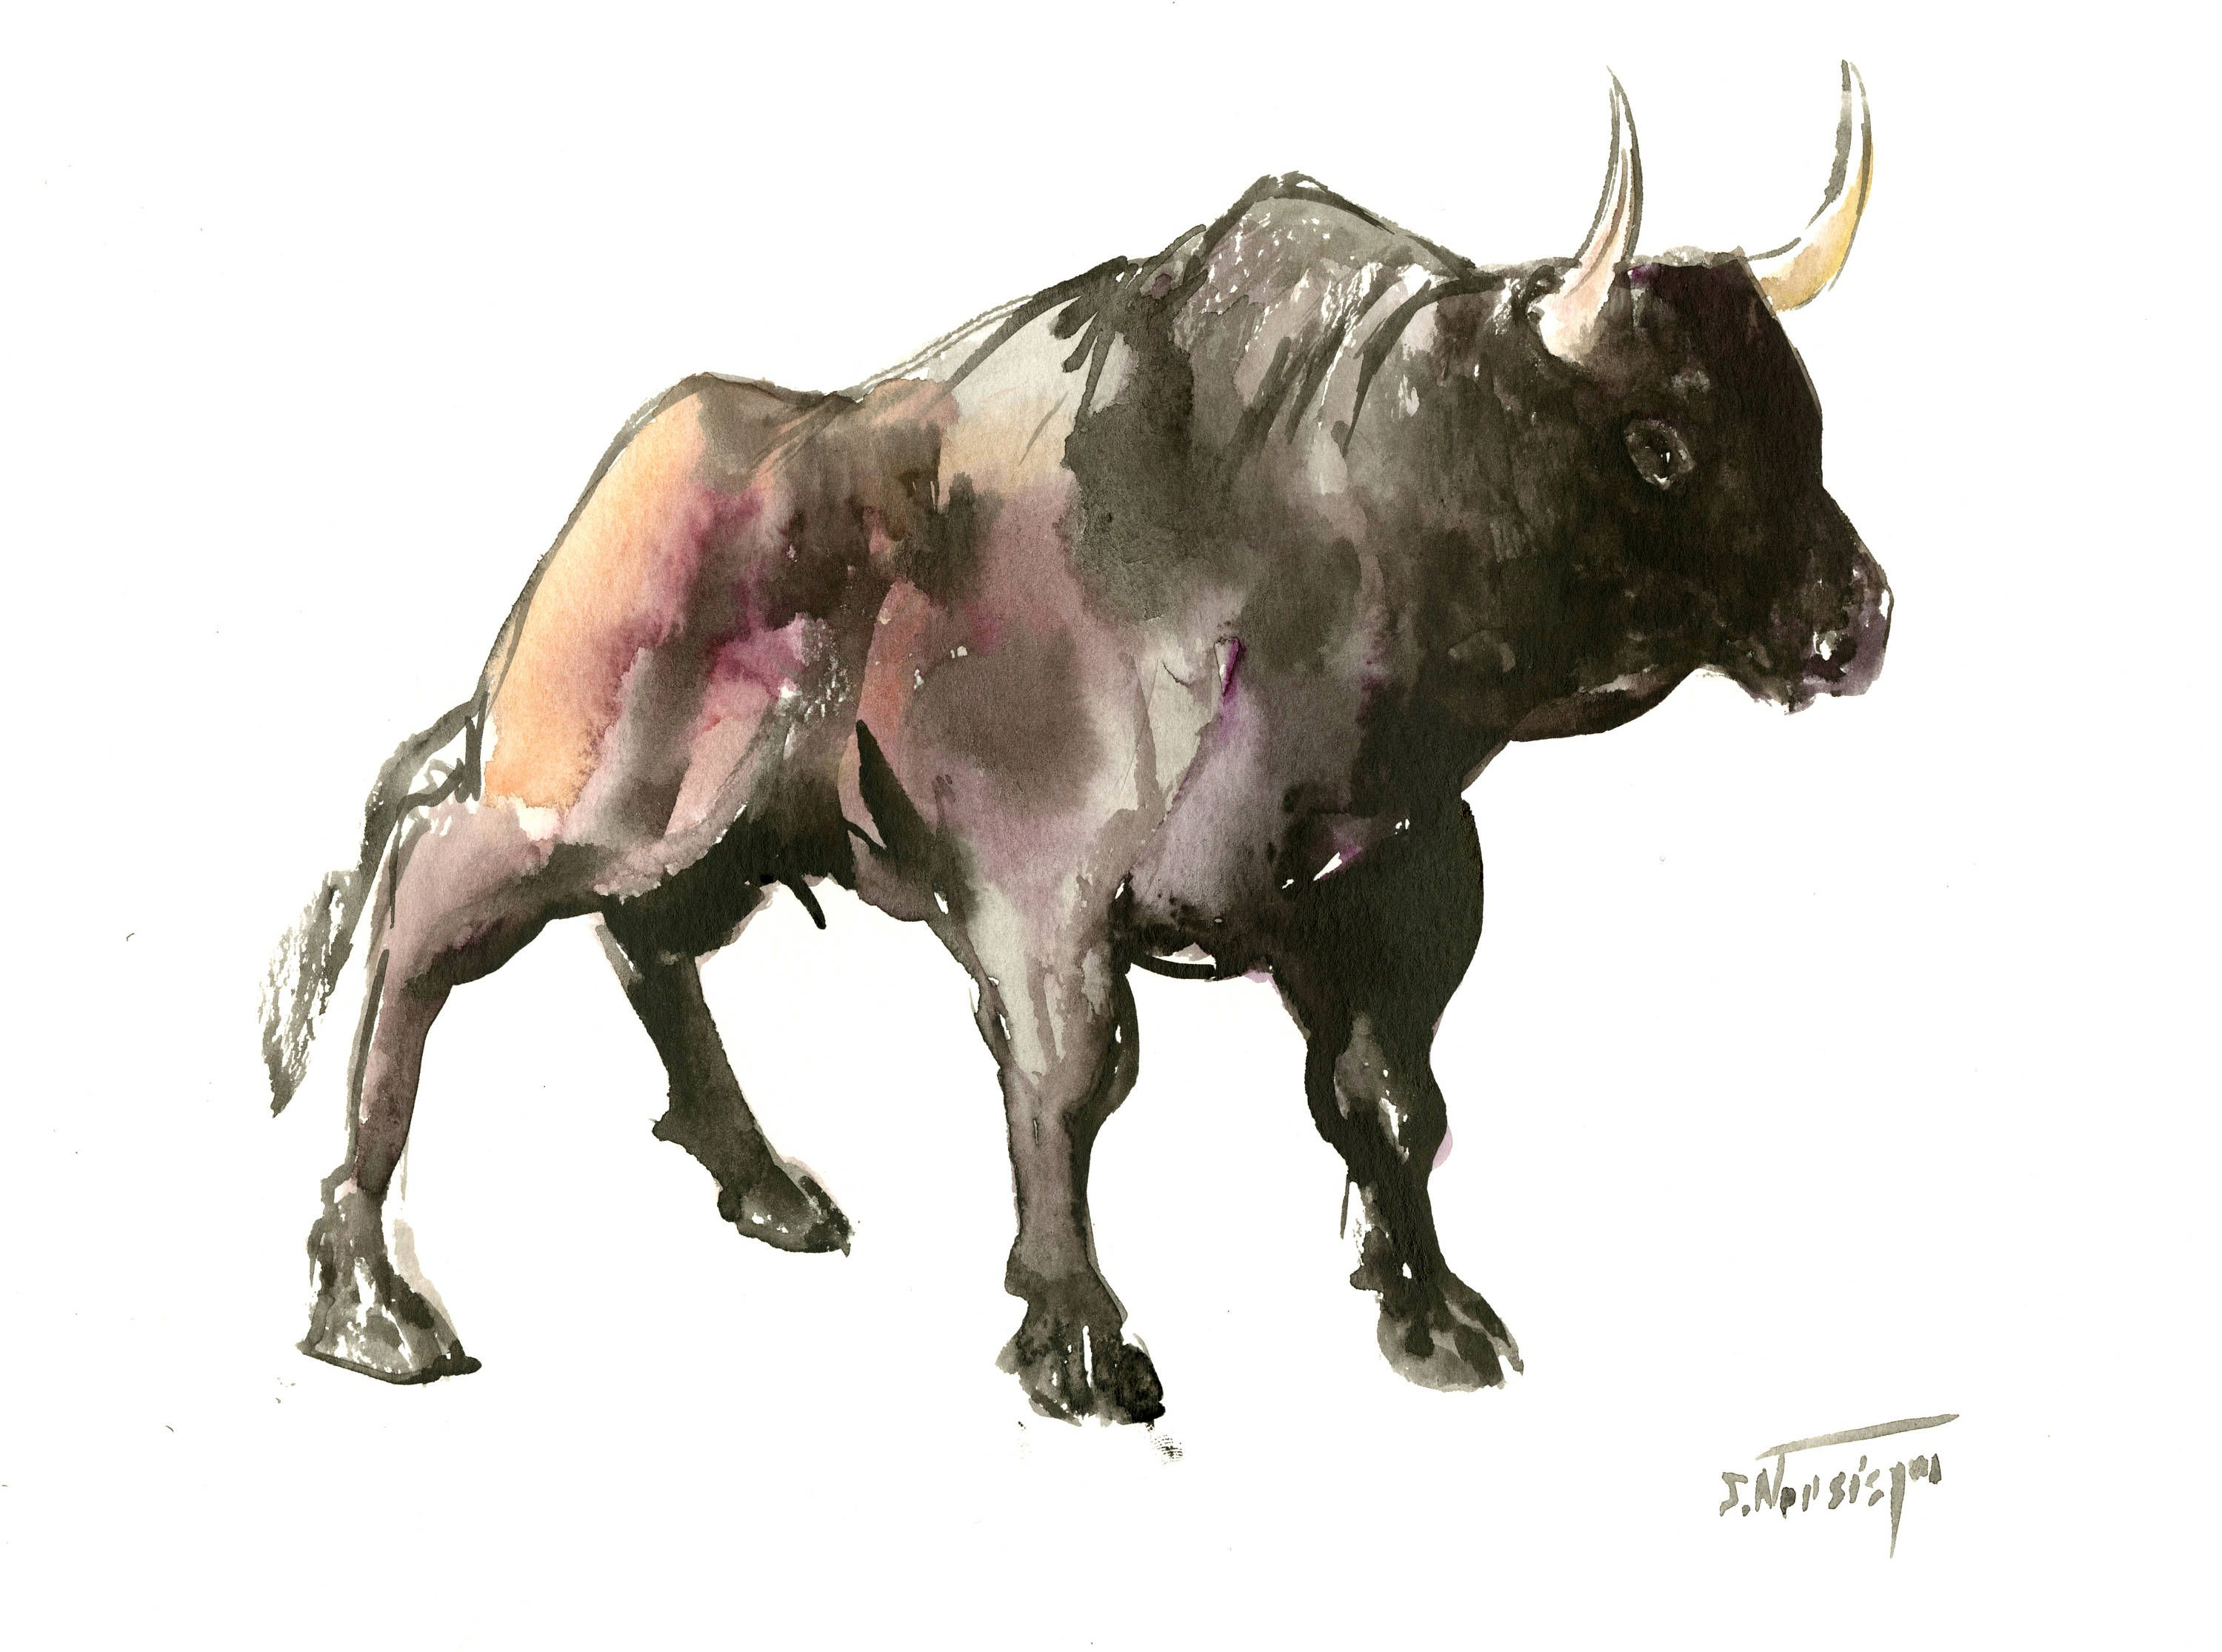 Bull Artwork Animal Art Bison Wild Animals Watercolor Painting